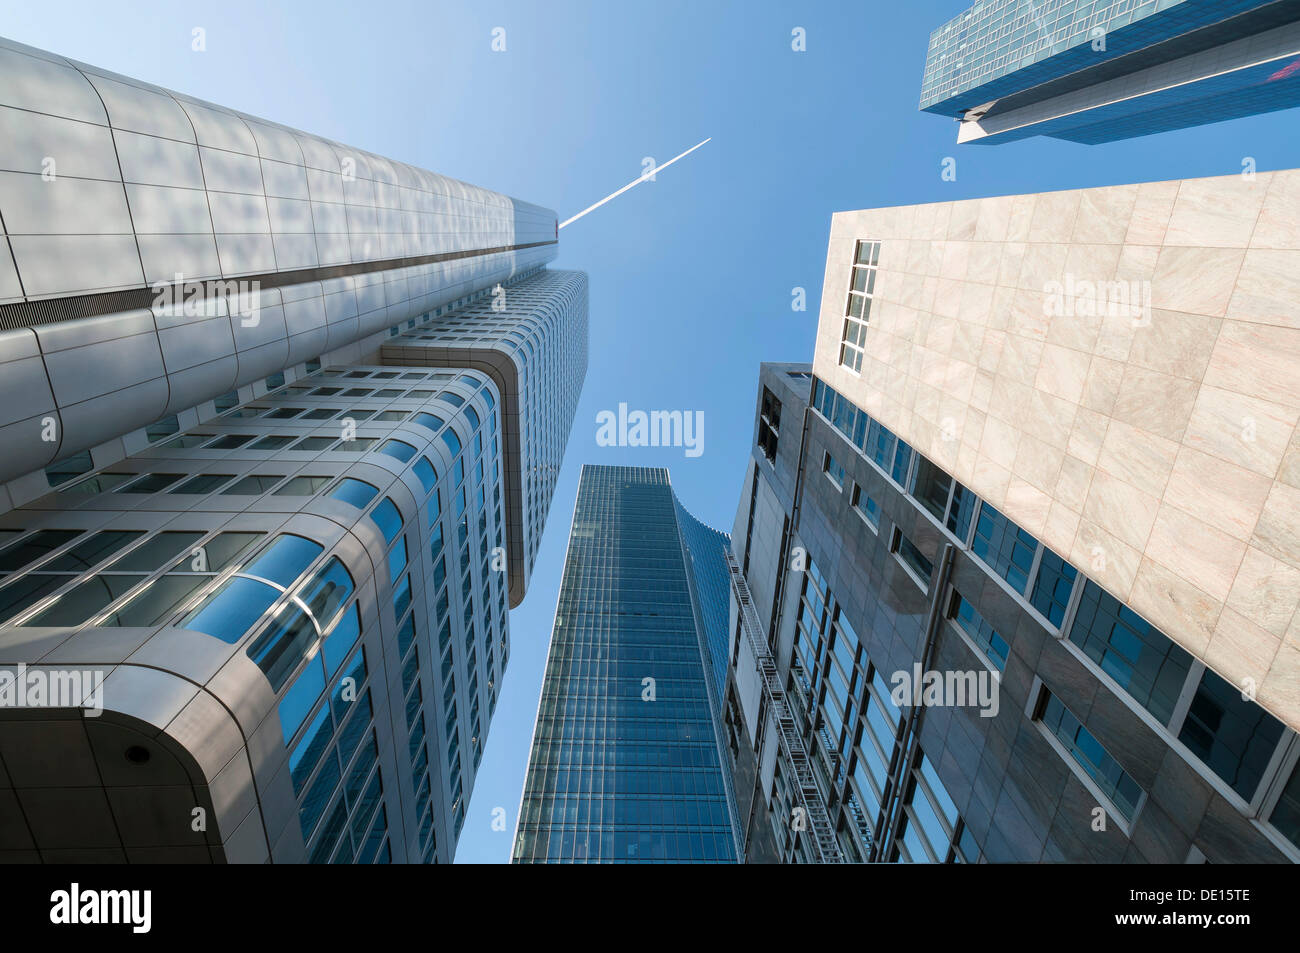 Silberturm or Silver Tower and other skyscrapers, Bankenviertel, Frankfurt am Main, Hesse, Germany - Stock Image